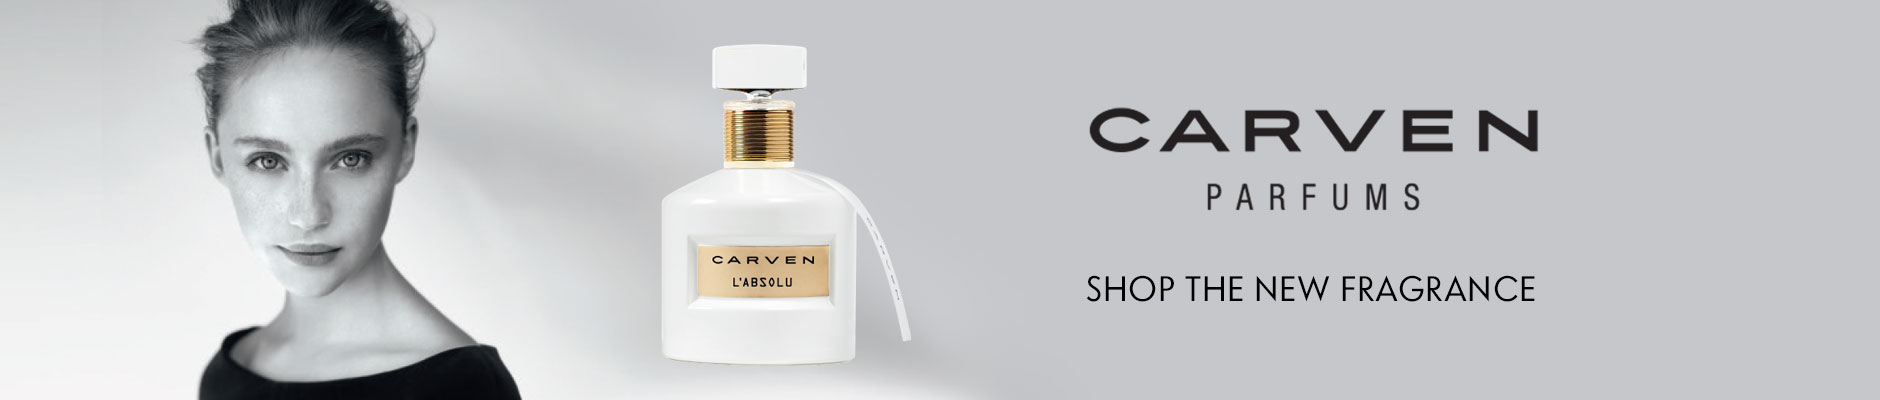 Carven Parfums - Shop The New Fragrance